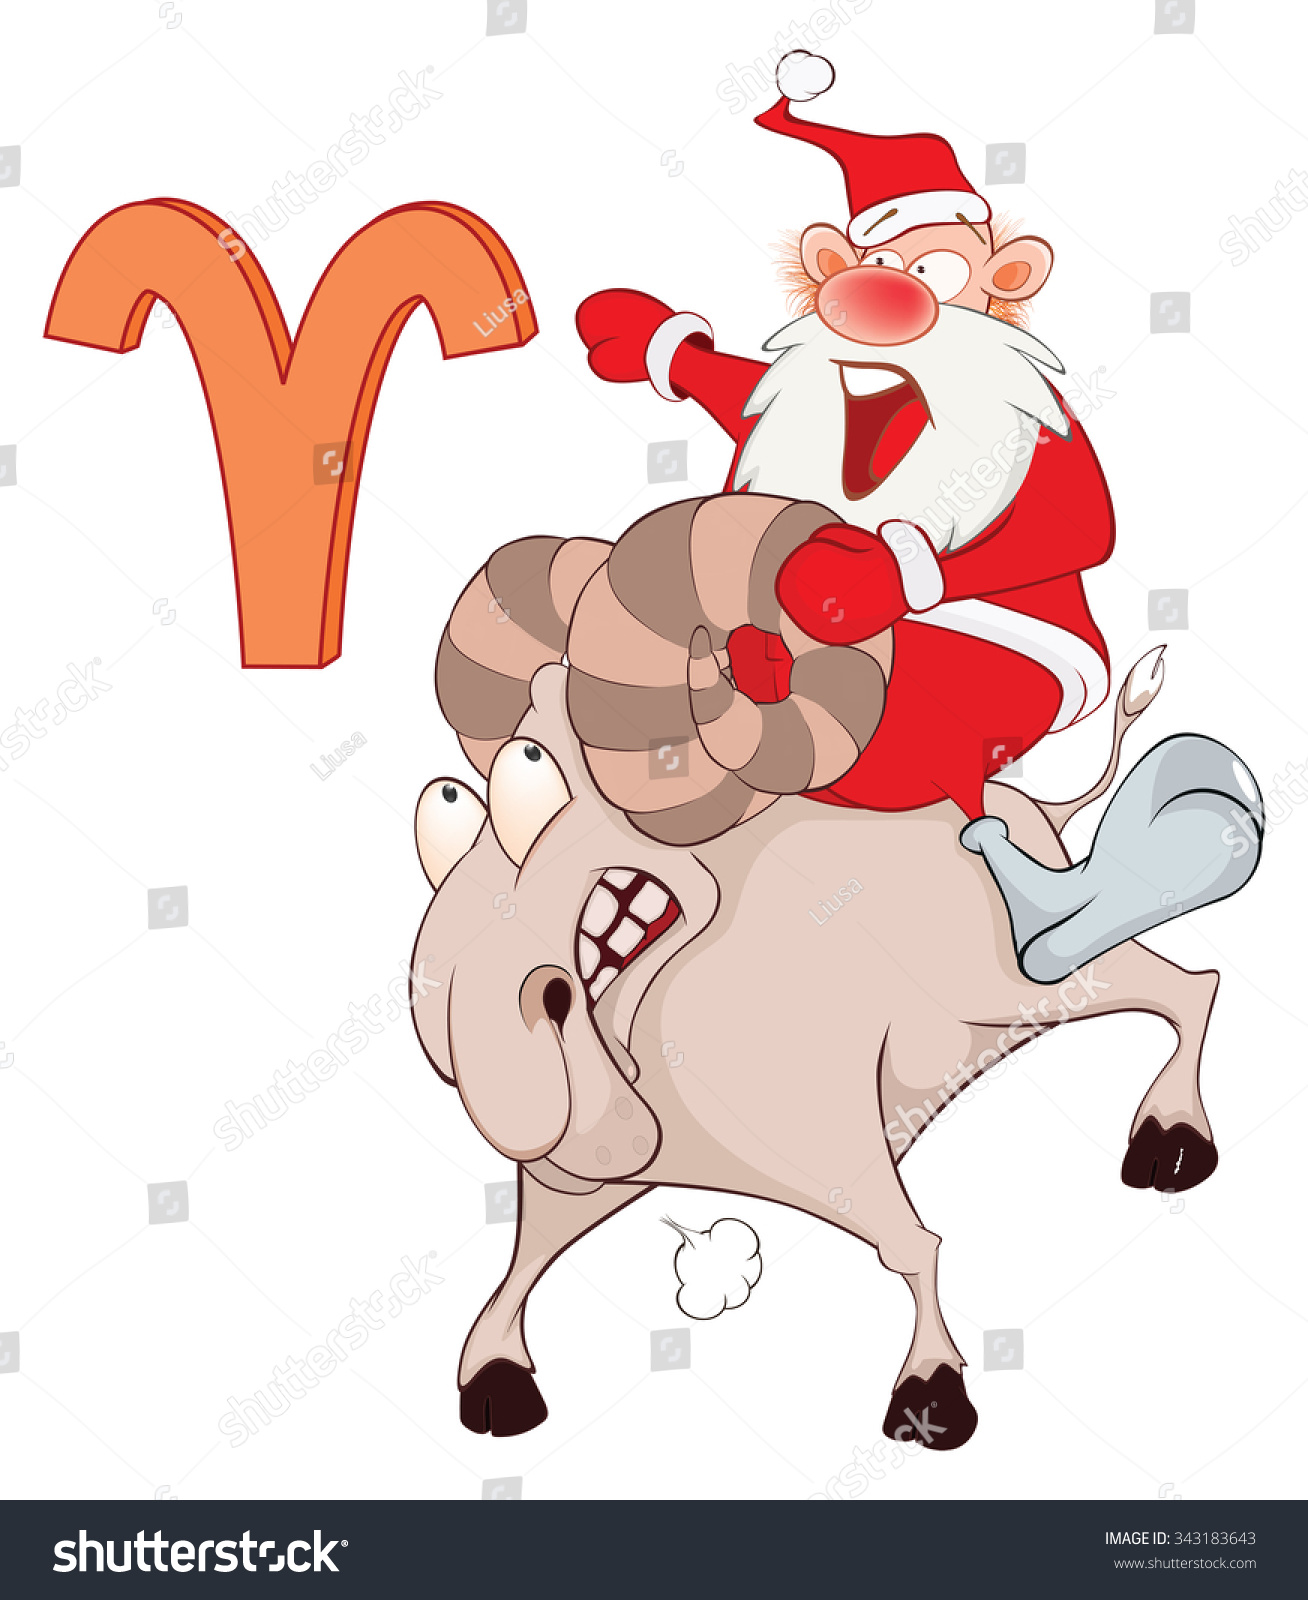 Illustration Of A Cute Santa Claus. Astrological Sign In The ...